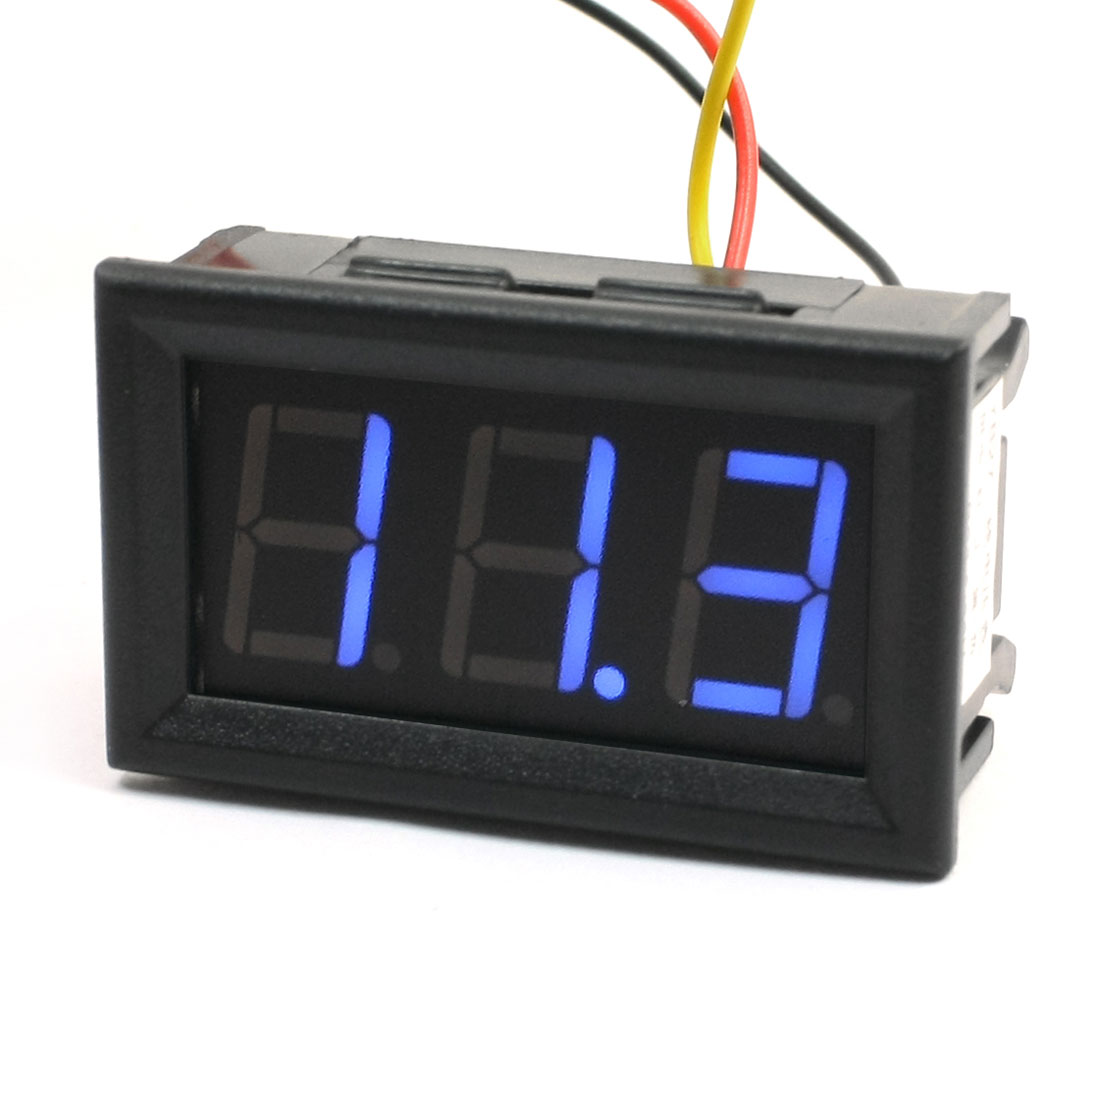 Blue LED Display DC 0-99.9V Voltage Test Meter Voltmeter Gauge